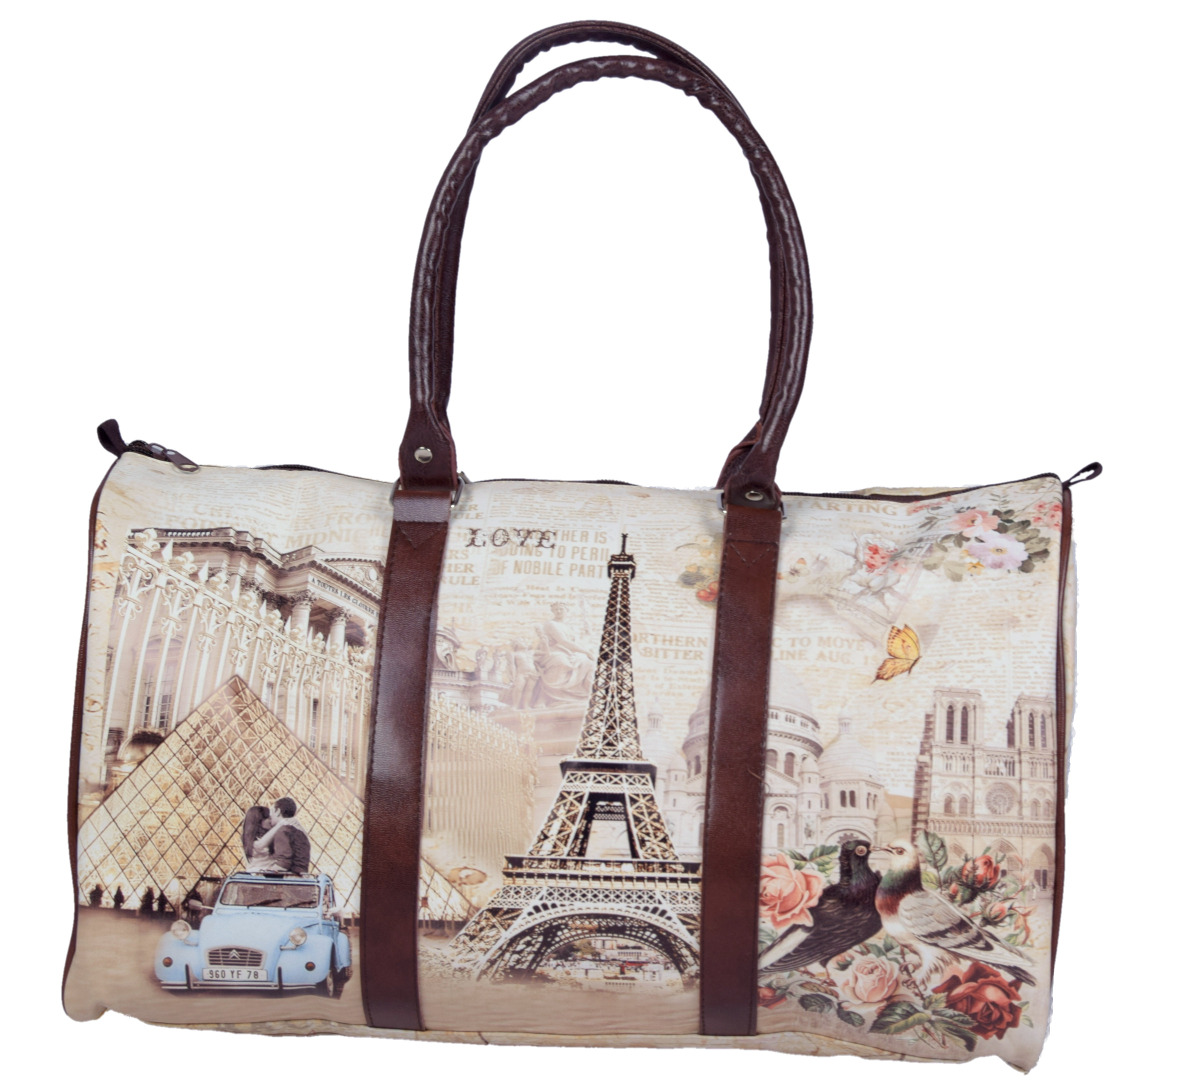 damen handtasche schultertasche shopper in london paris vintage style 44x20x26 ebay. Black Bedroom Furniture Sets. Home Design Ideas